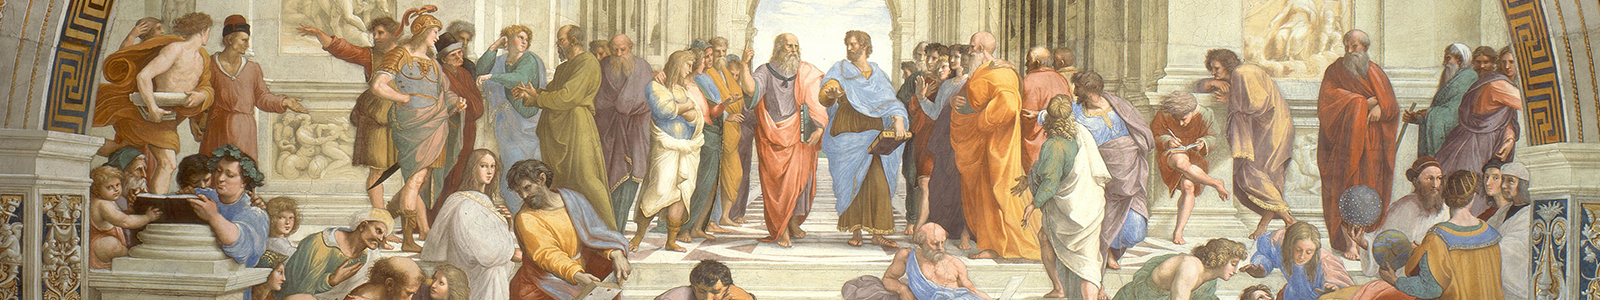 The School of Athens by Raffaello Sanzio da Urbino